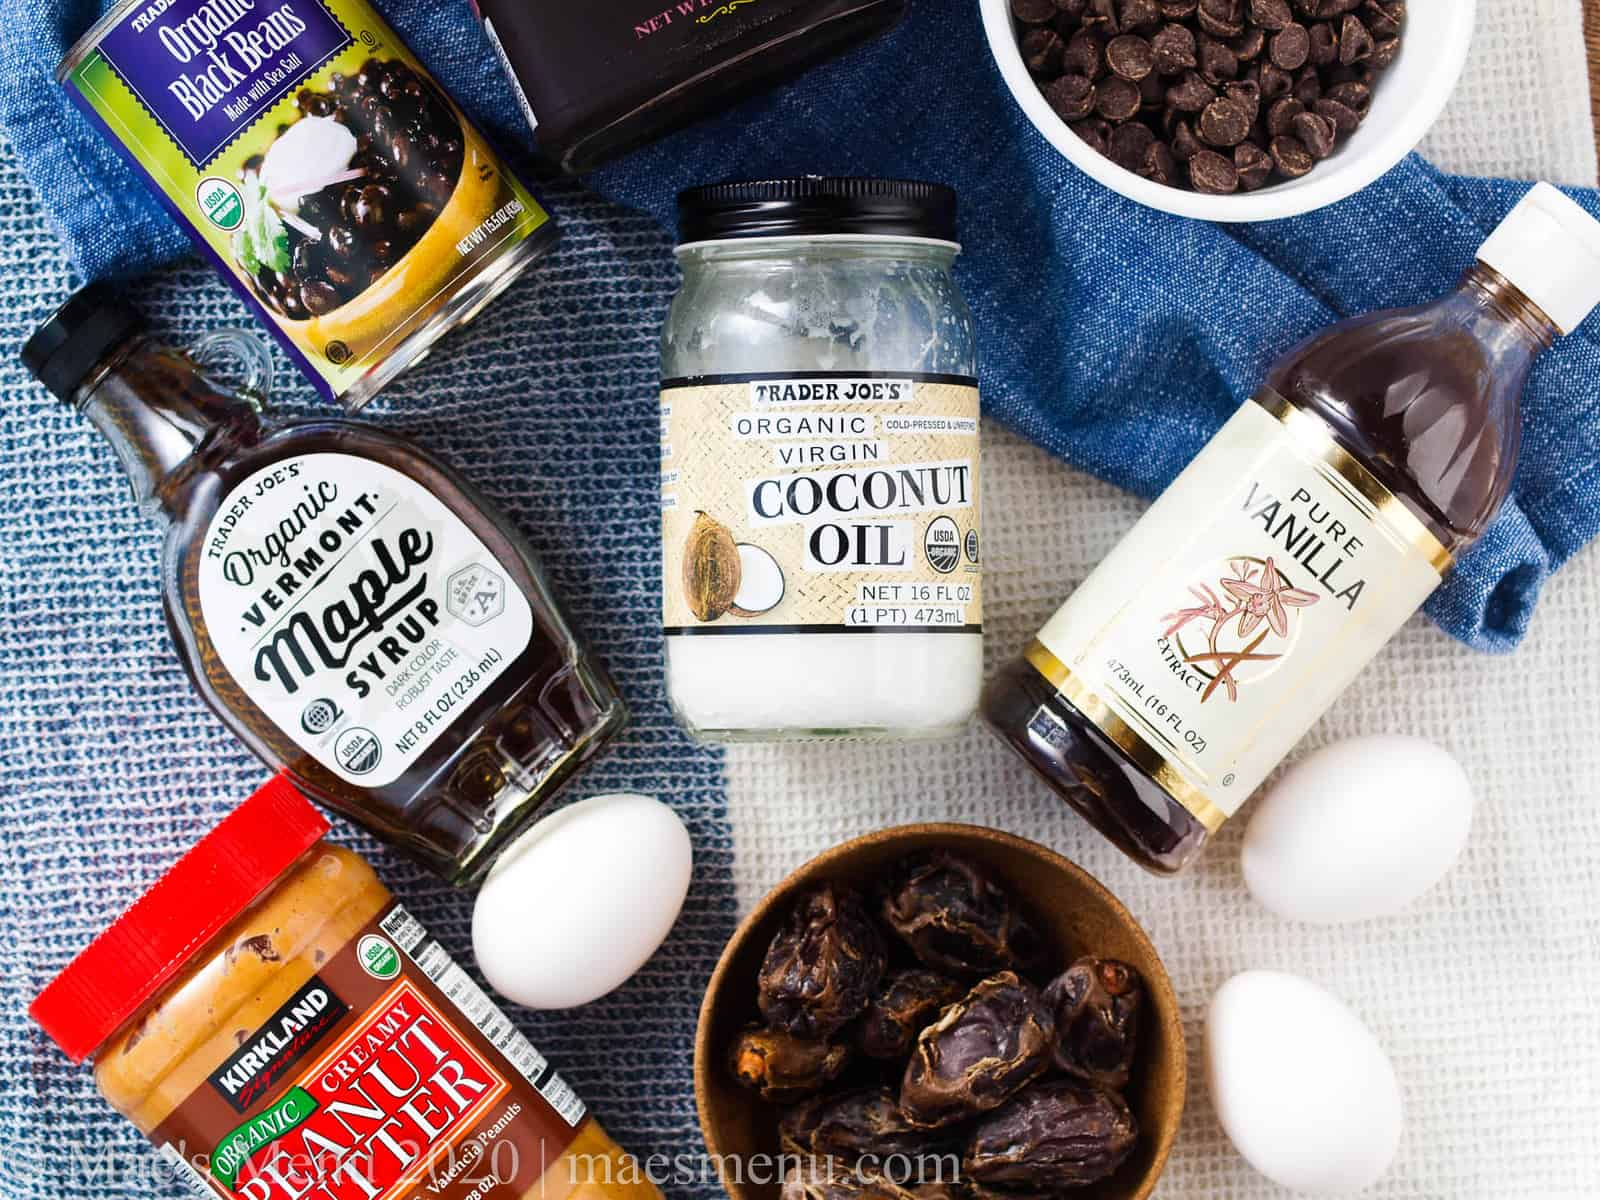 The ingredients for fudgy date brownies: peanut butter, maple syrup, eggs, dates, cocoa powder, coconut oil, and more.